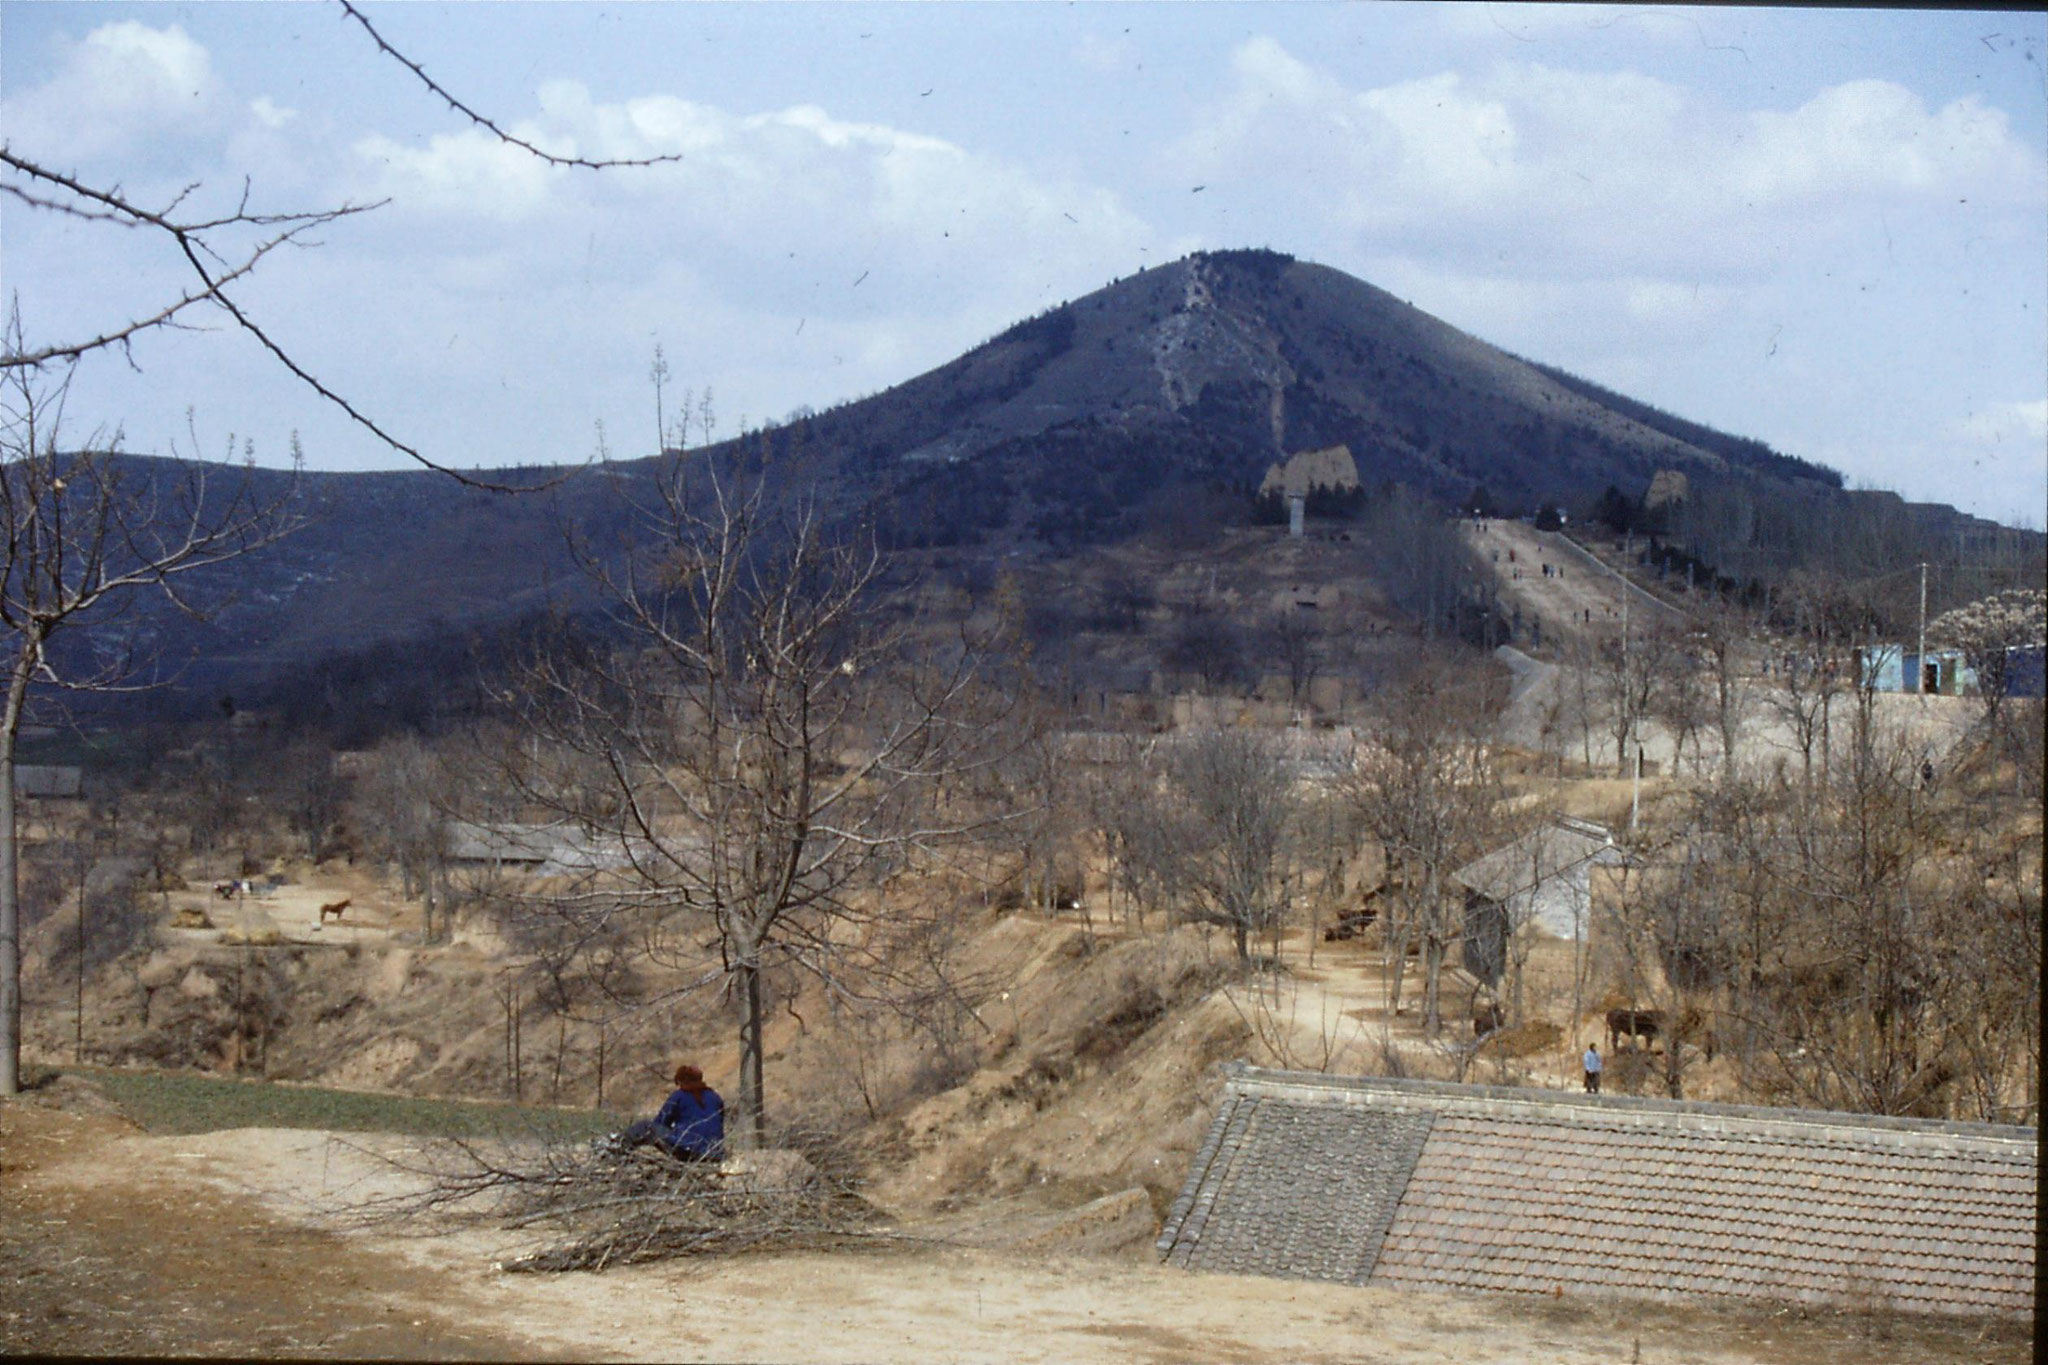 7/3/1989: 33: village in side of hill